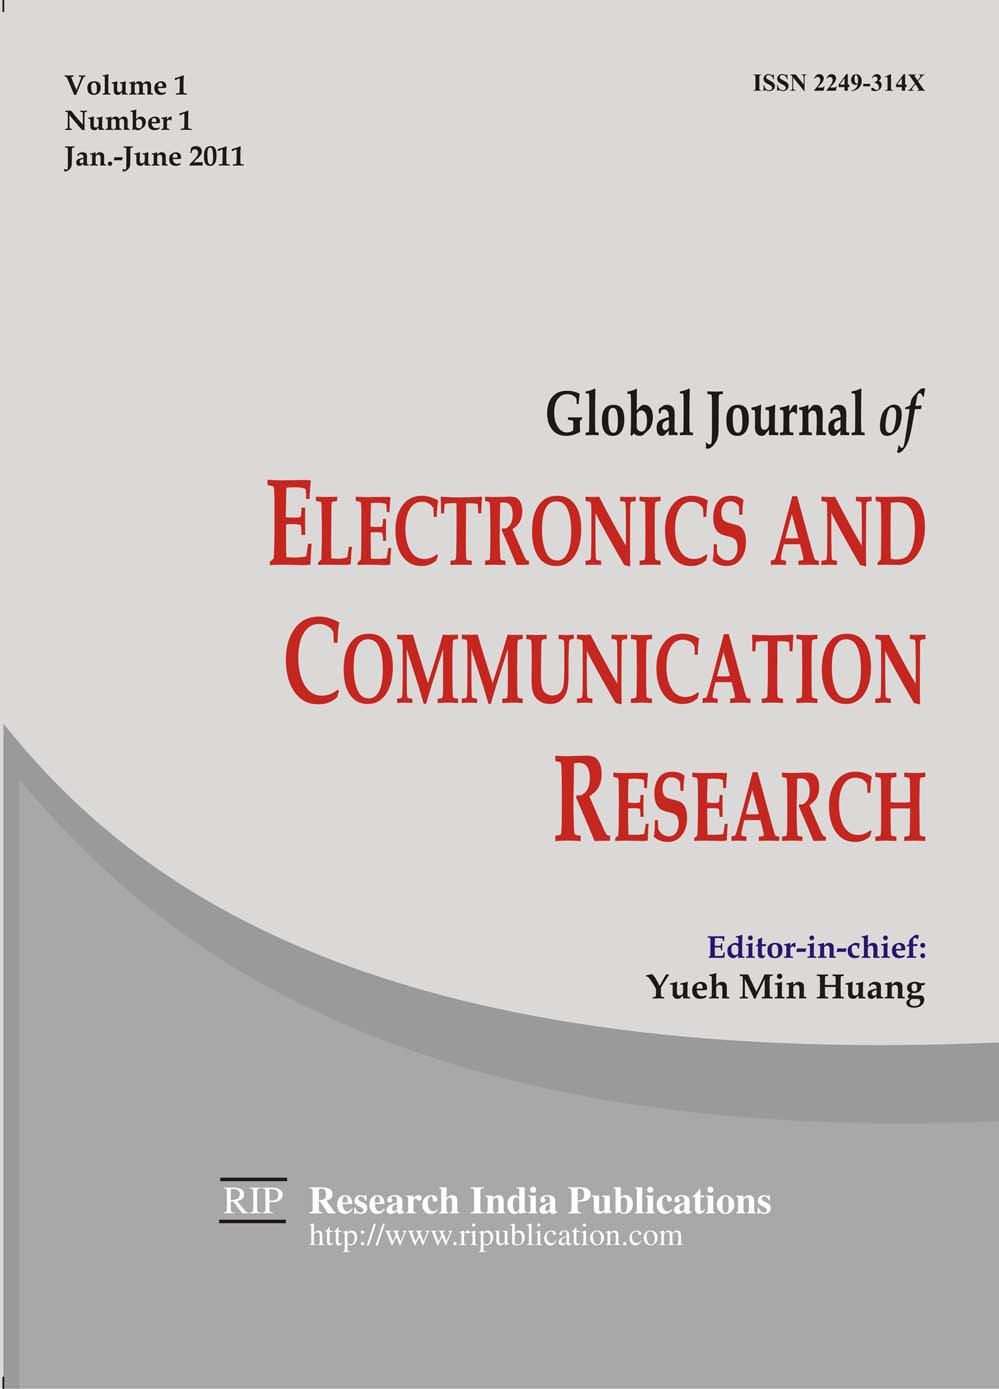 research papers on electronics and communication Explore latest research papers in electronics, electronics science and telecommunication ece seminar topics, latest ece medical, embedded, communication seminar papers 2015 2016, recent.